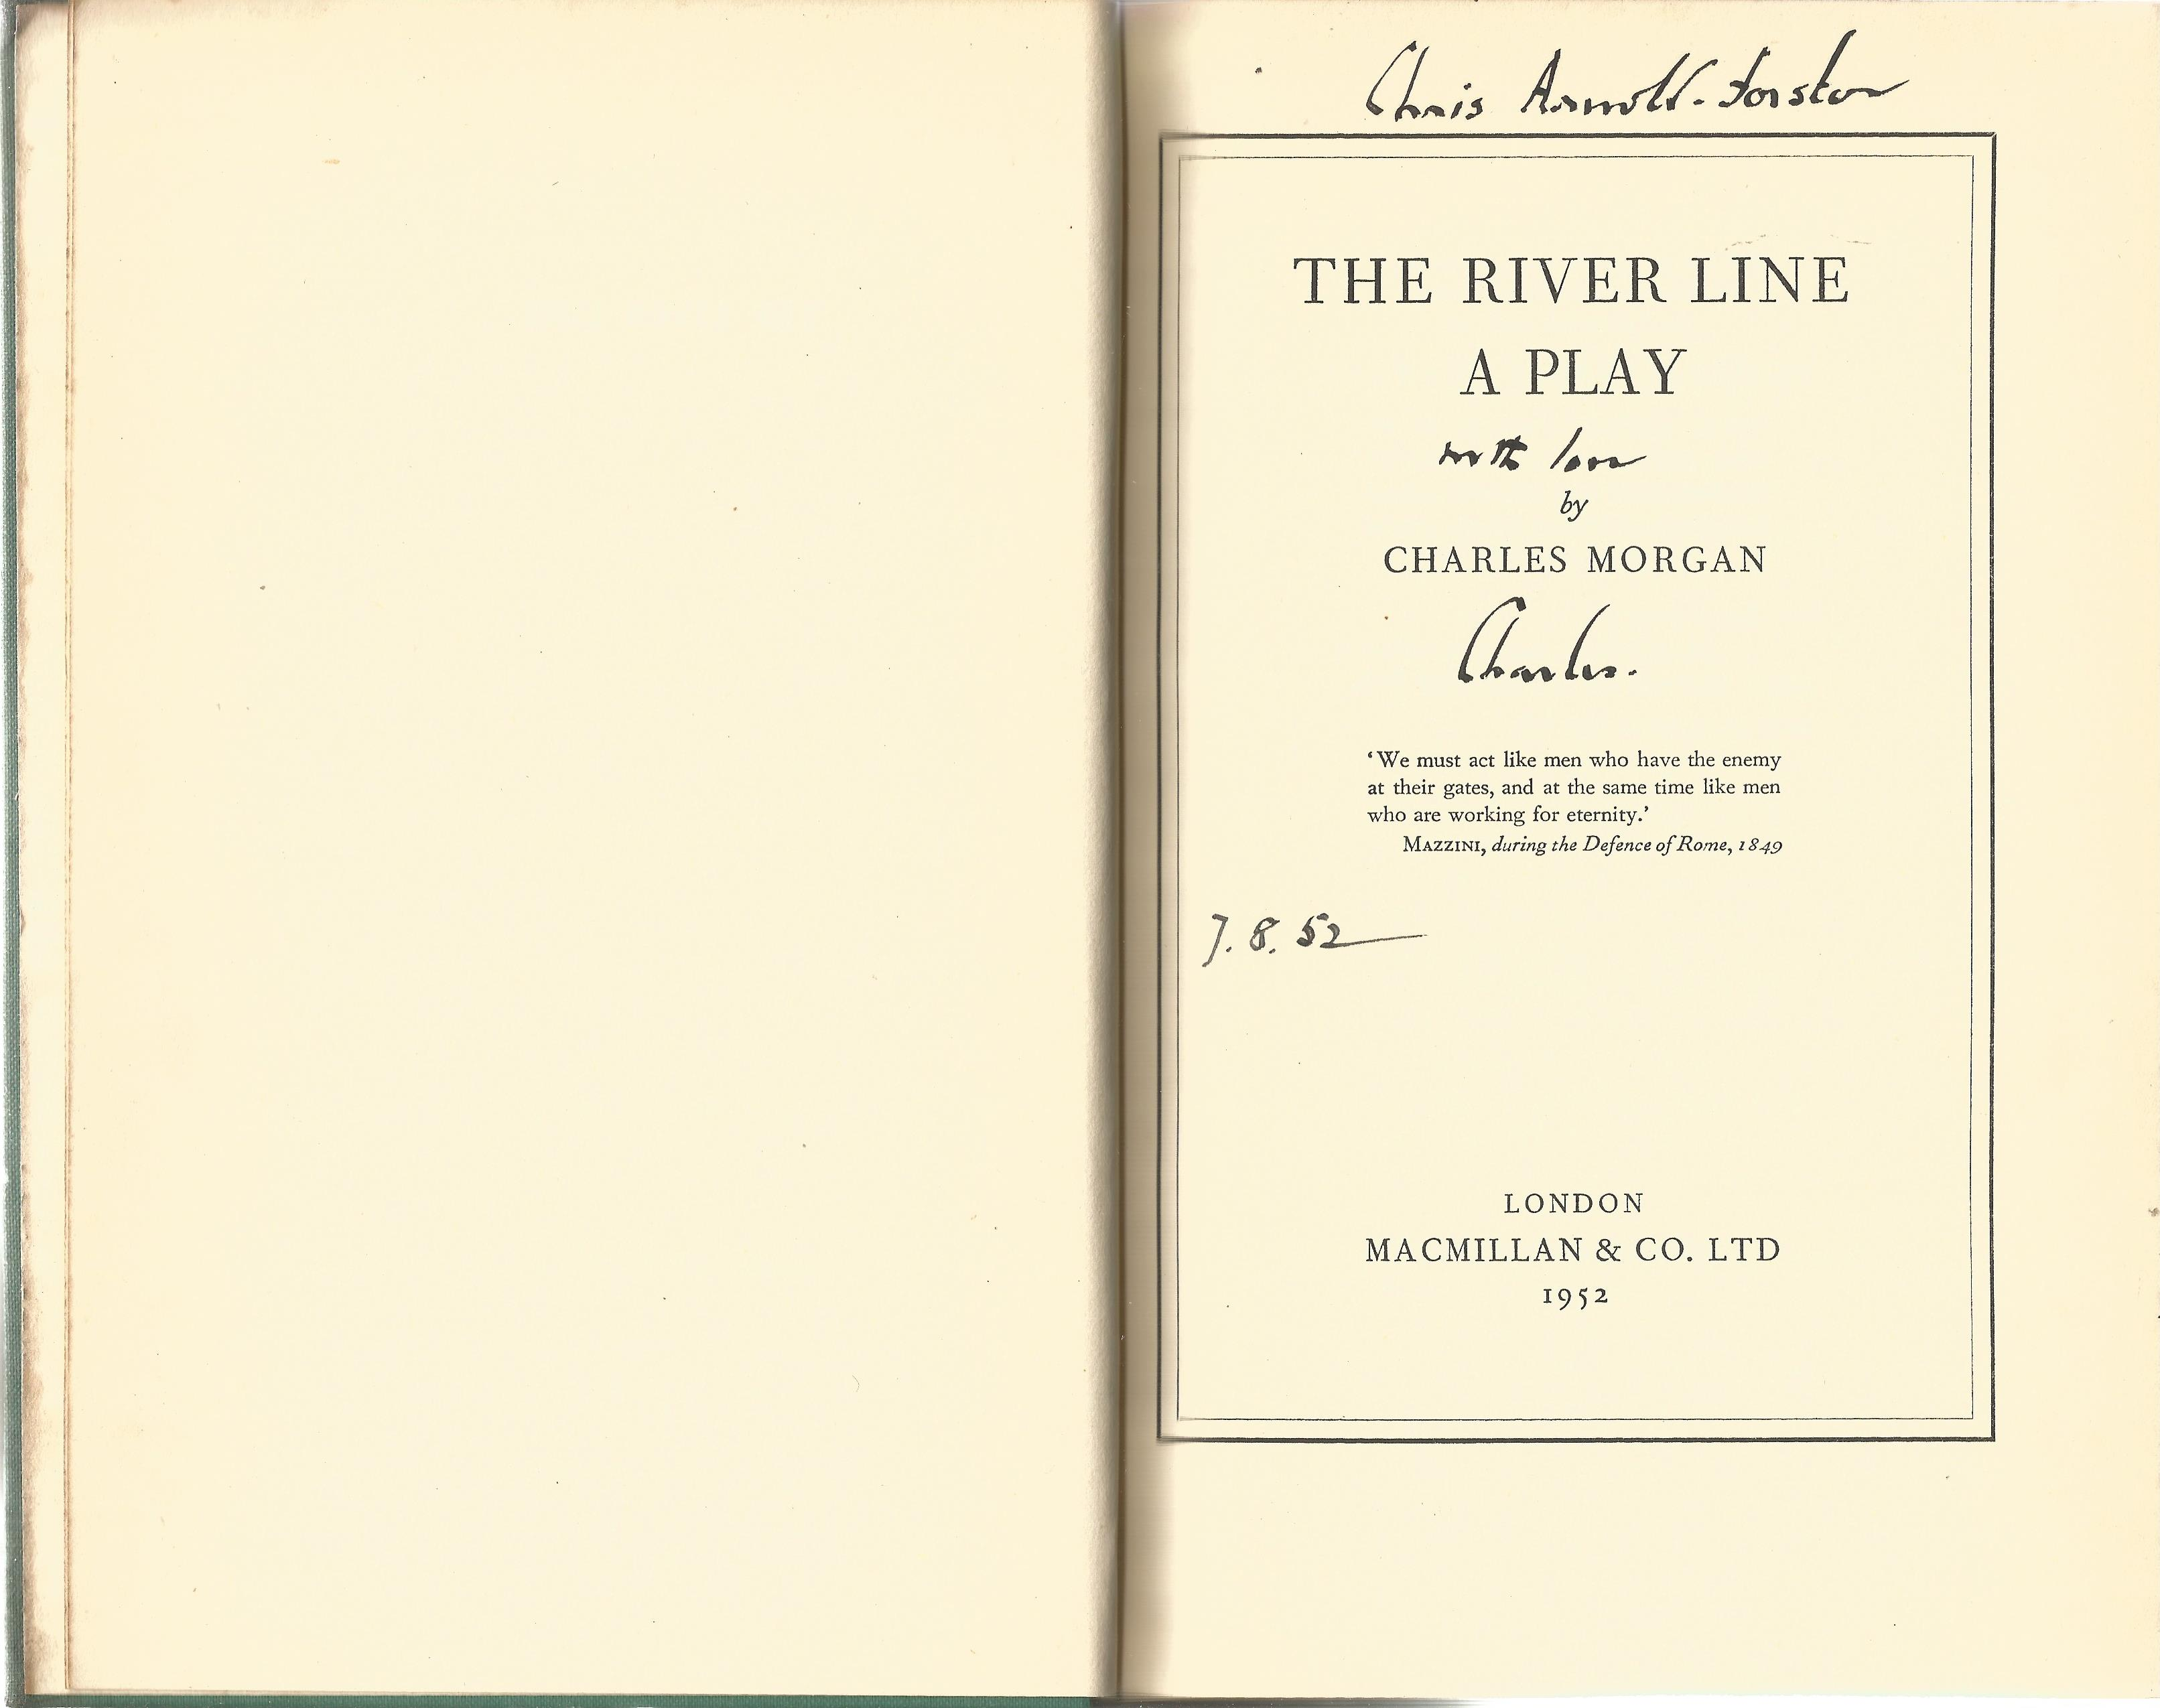 Charles Morgan Hardback Book The River Line A Play signed by the Author on the Title Page and - Image 2 of 2